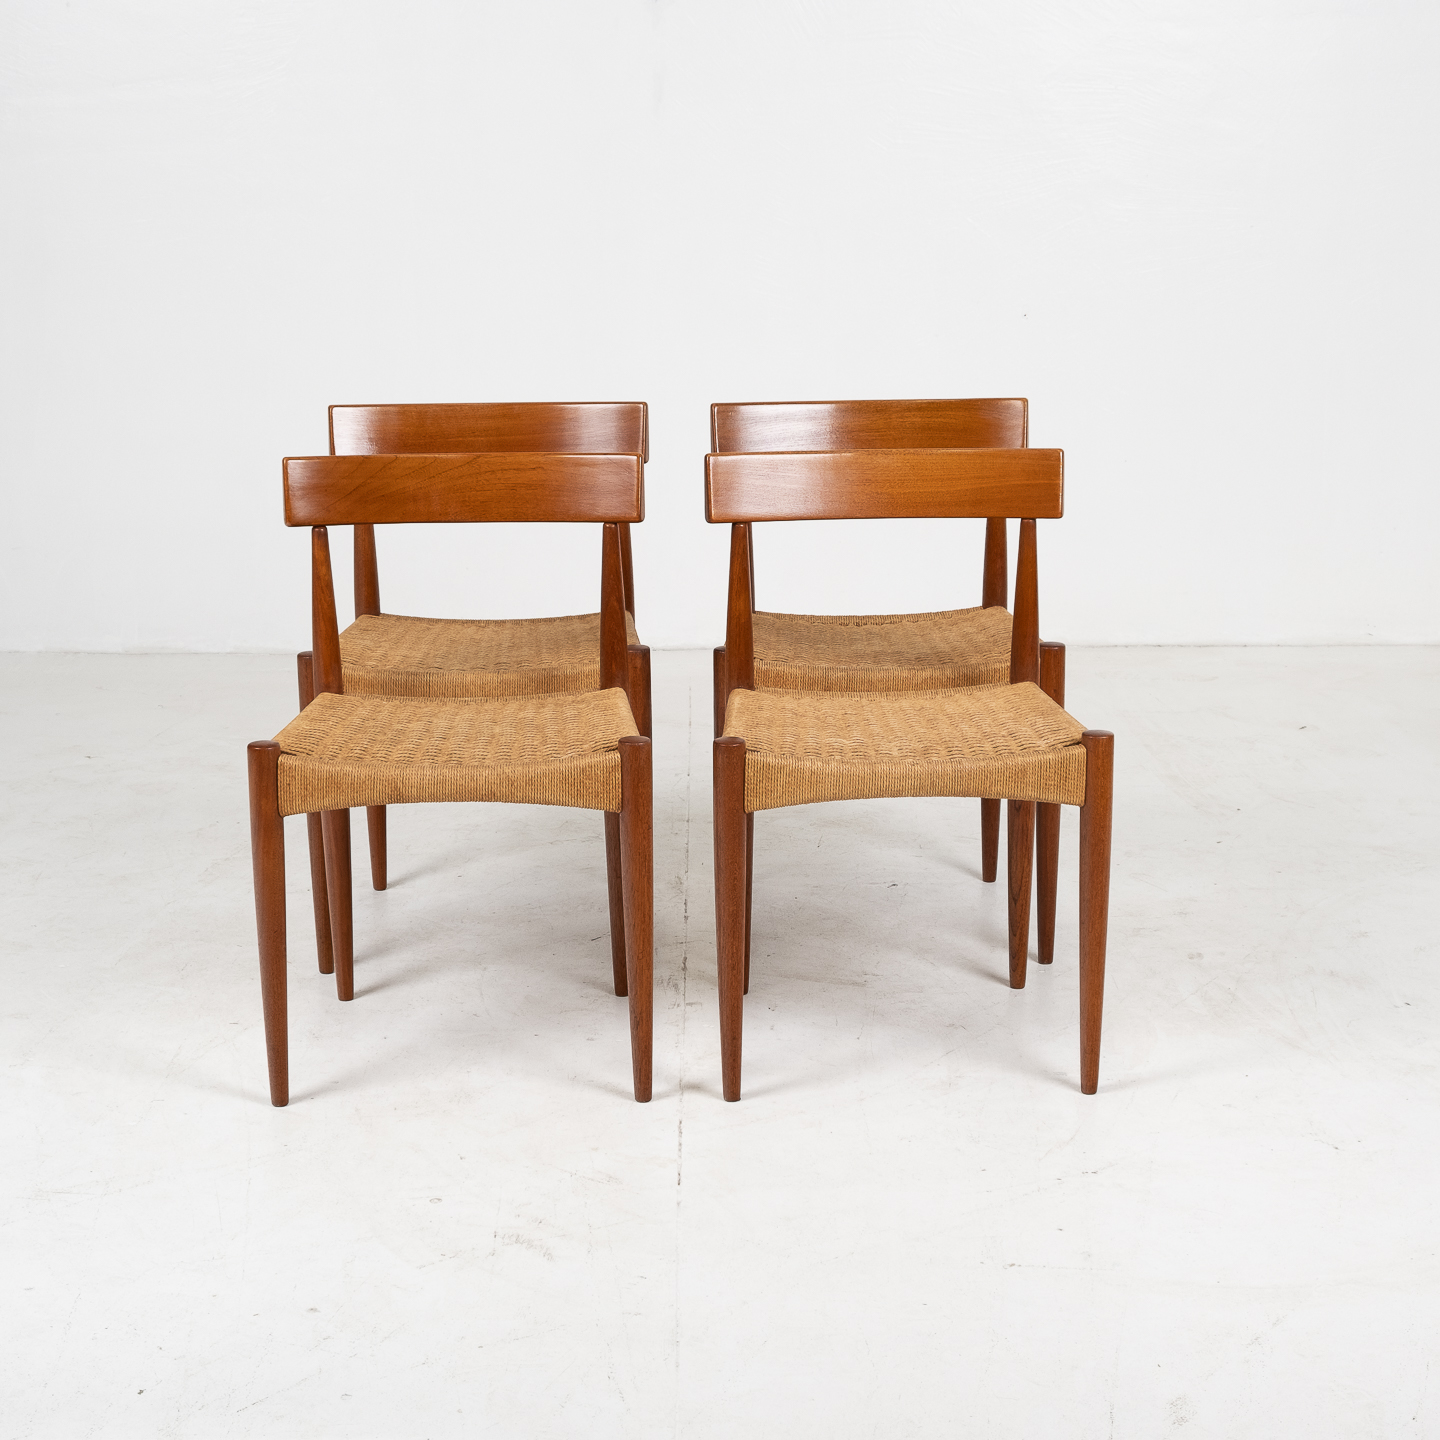 Set Of Four Dining Chairs In Teak And Danish Cord By Mk Danish, 1950s, Denmark 08